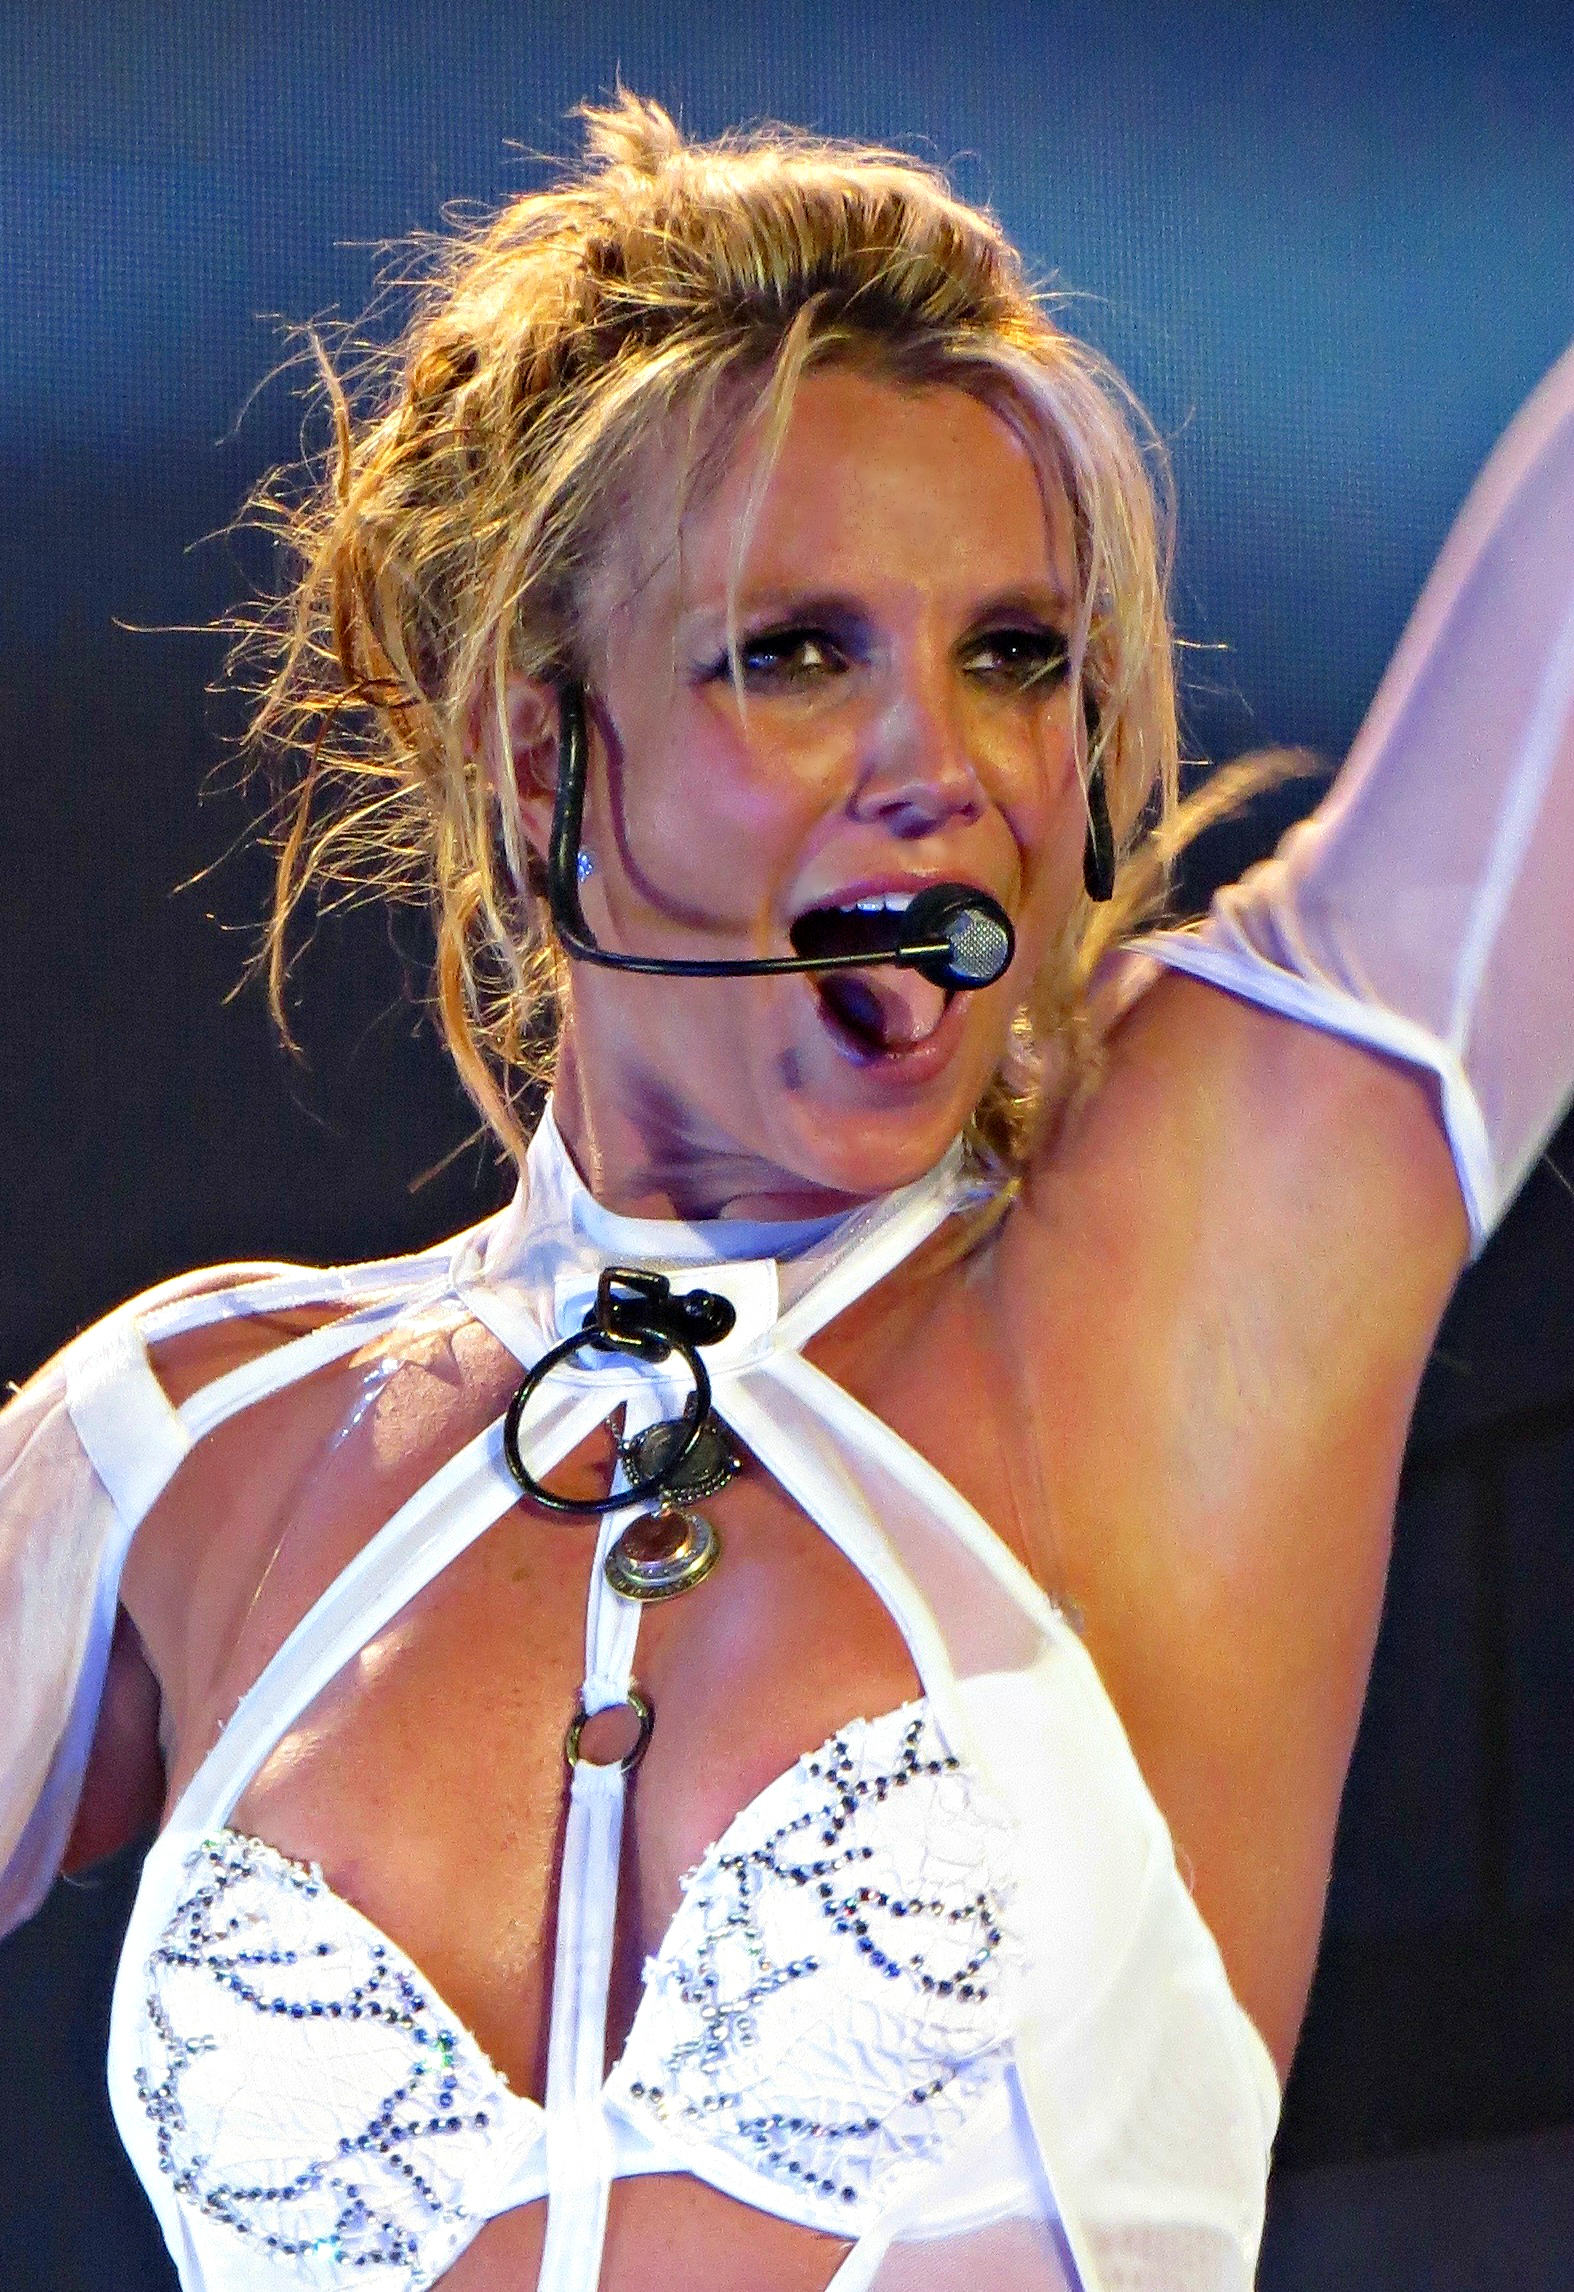 plastic surgery celebrities Britney Spears